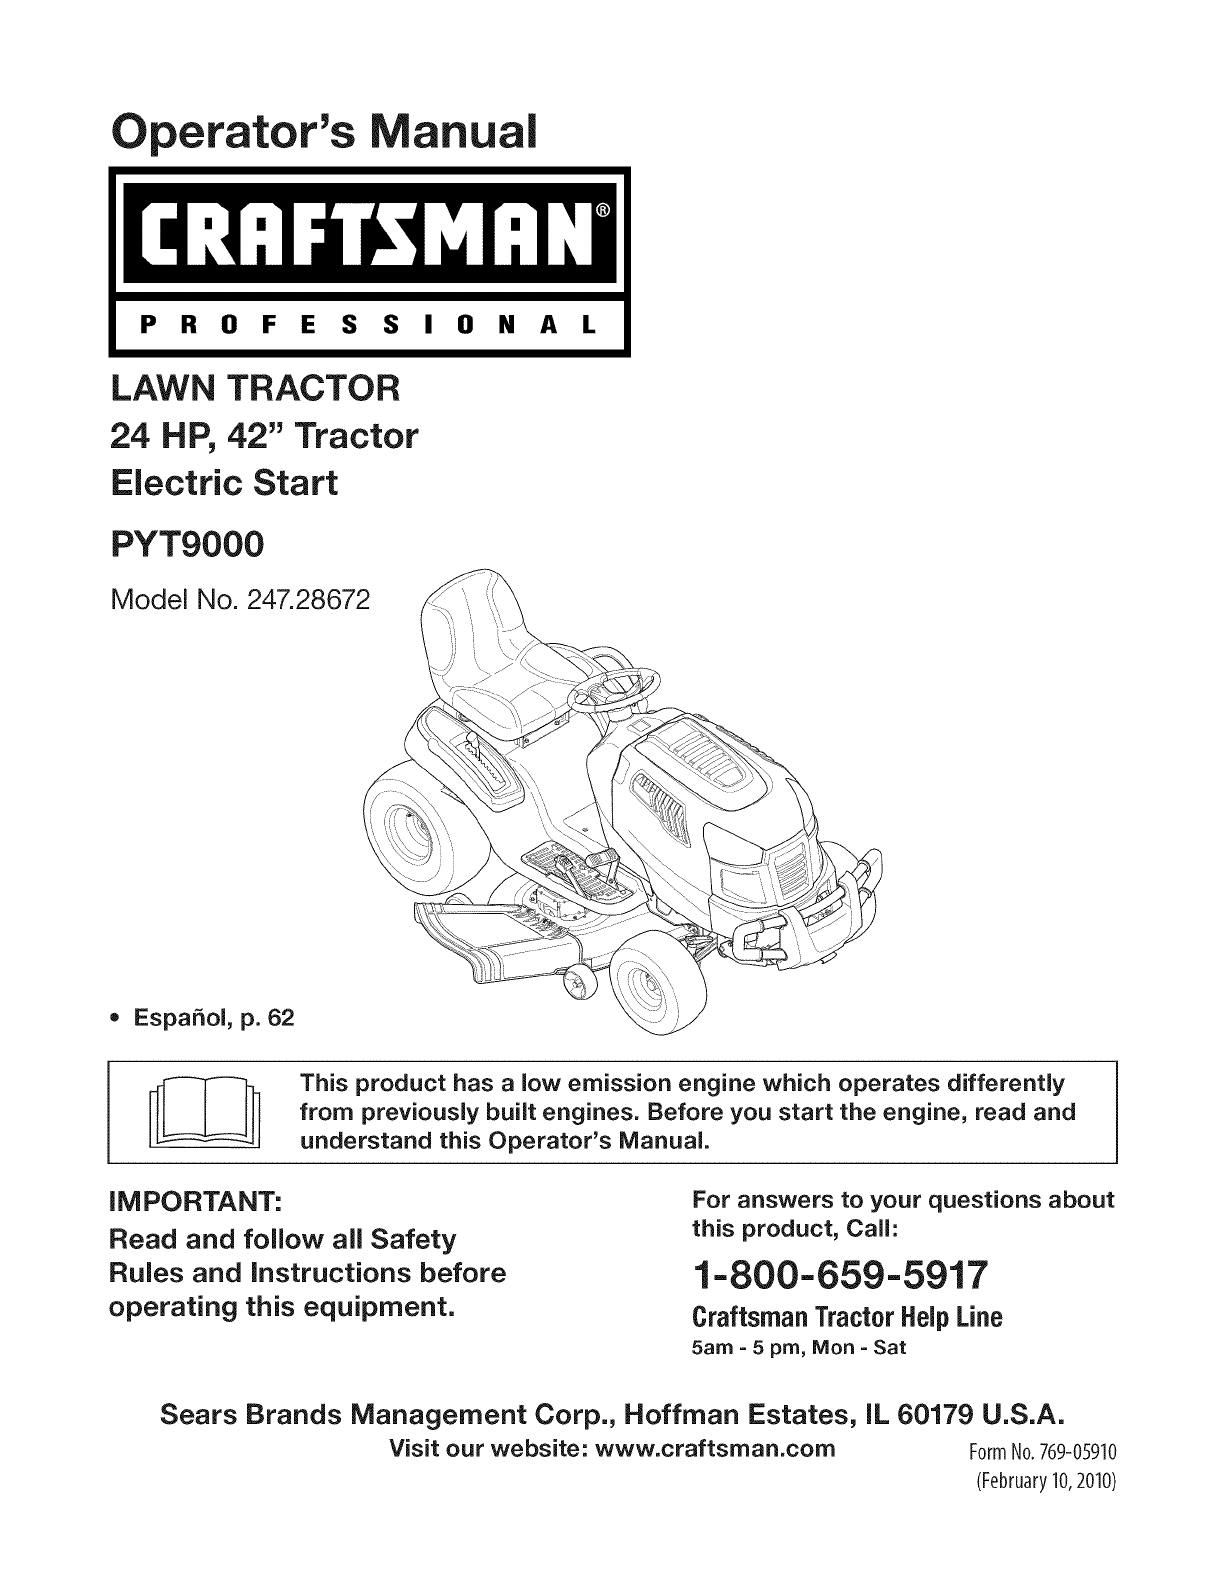 dbd31f11 917d 44da 8ef1 e7030c6b4234 bg1 craftsman lawn mower pyt 9000 user guide manualsonline com craftsman model 917 wiring diagram at crackthecode.co